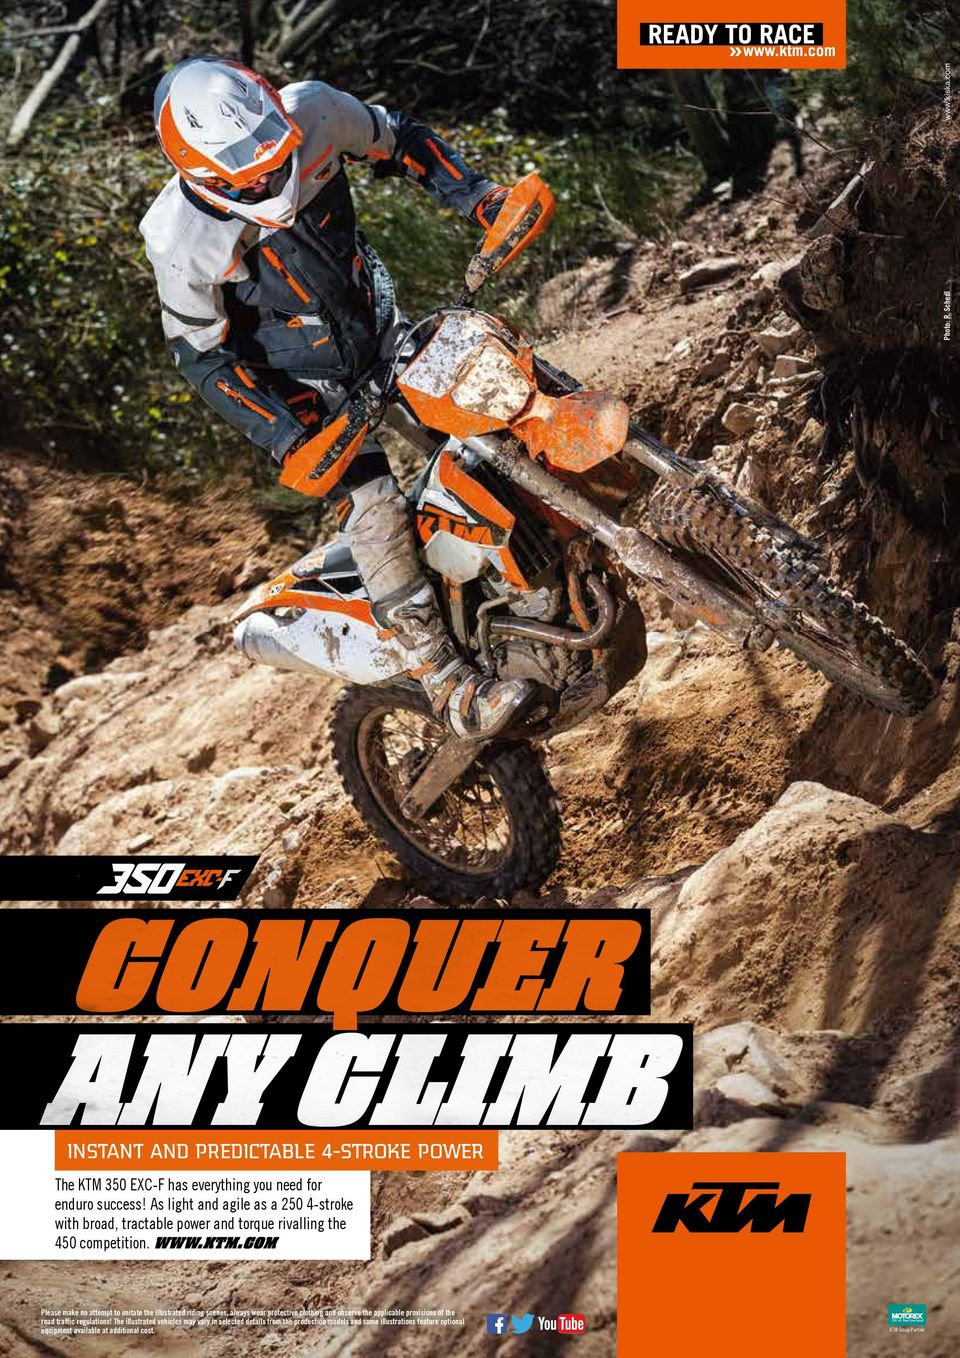 As light and agile as a 250 4-stroke with broad, tractable power and torque rivalling the 450 competition. WWW.KTM.